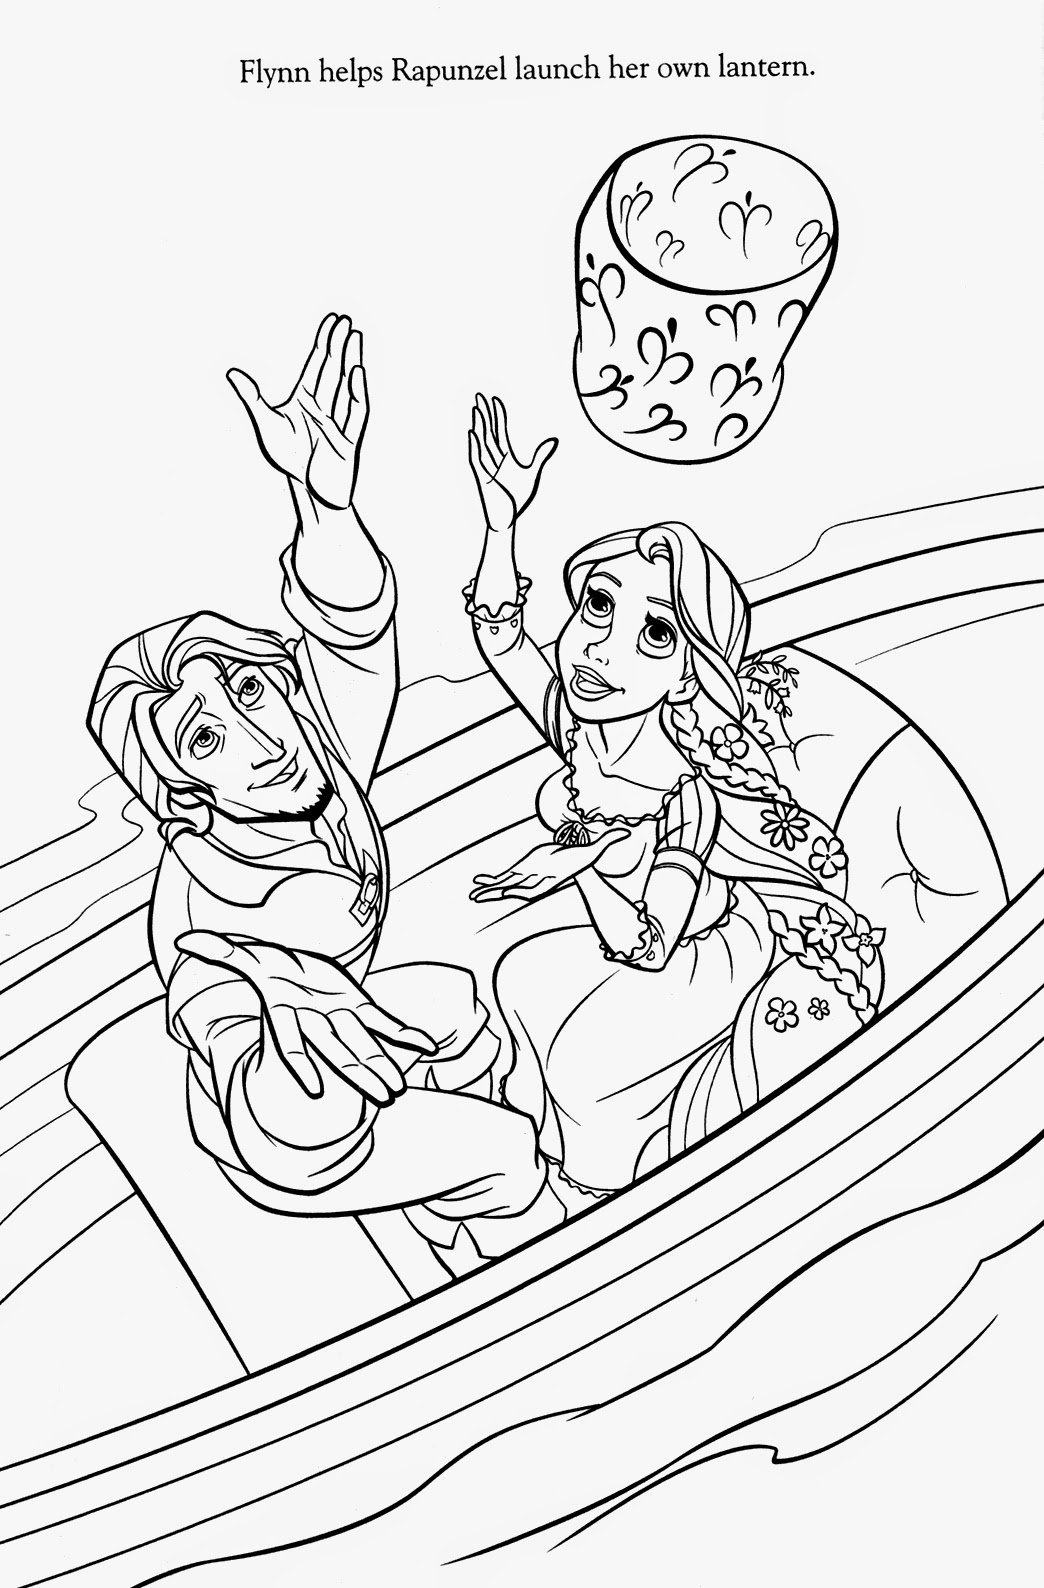 Coloring Pages Tangled Free Printable Coloring Pages Of Rapunzel Flynn Pascal Maximus Gothel